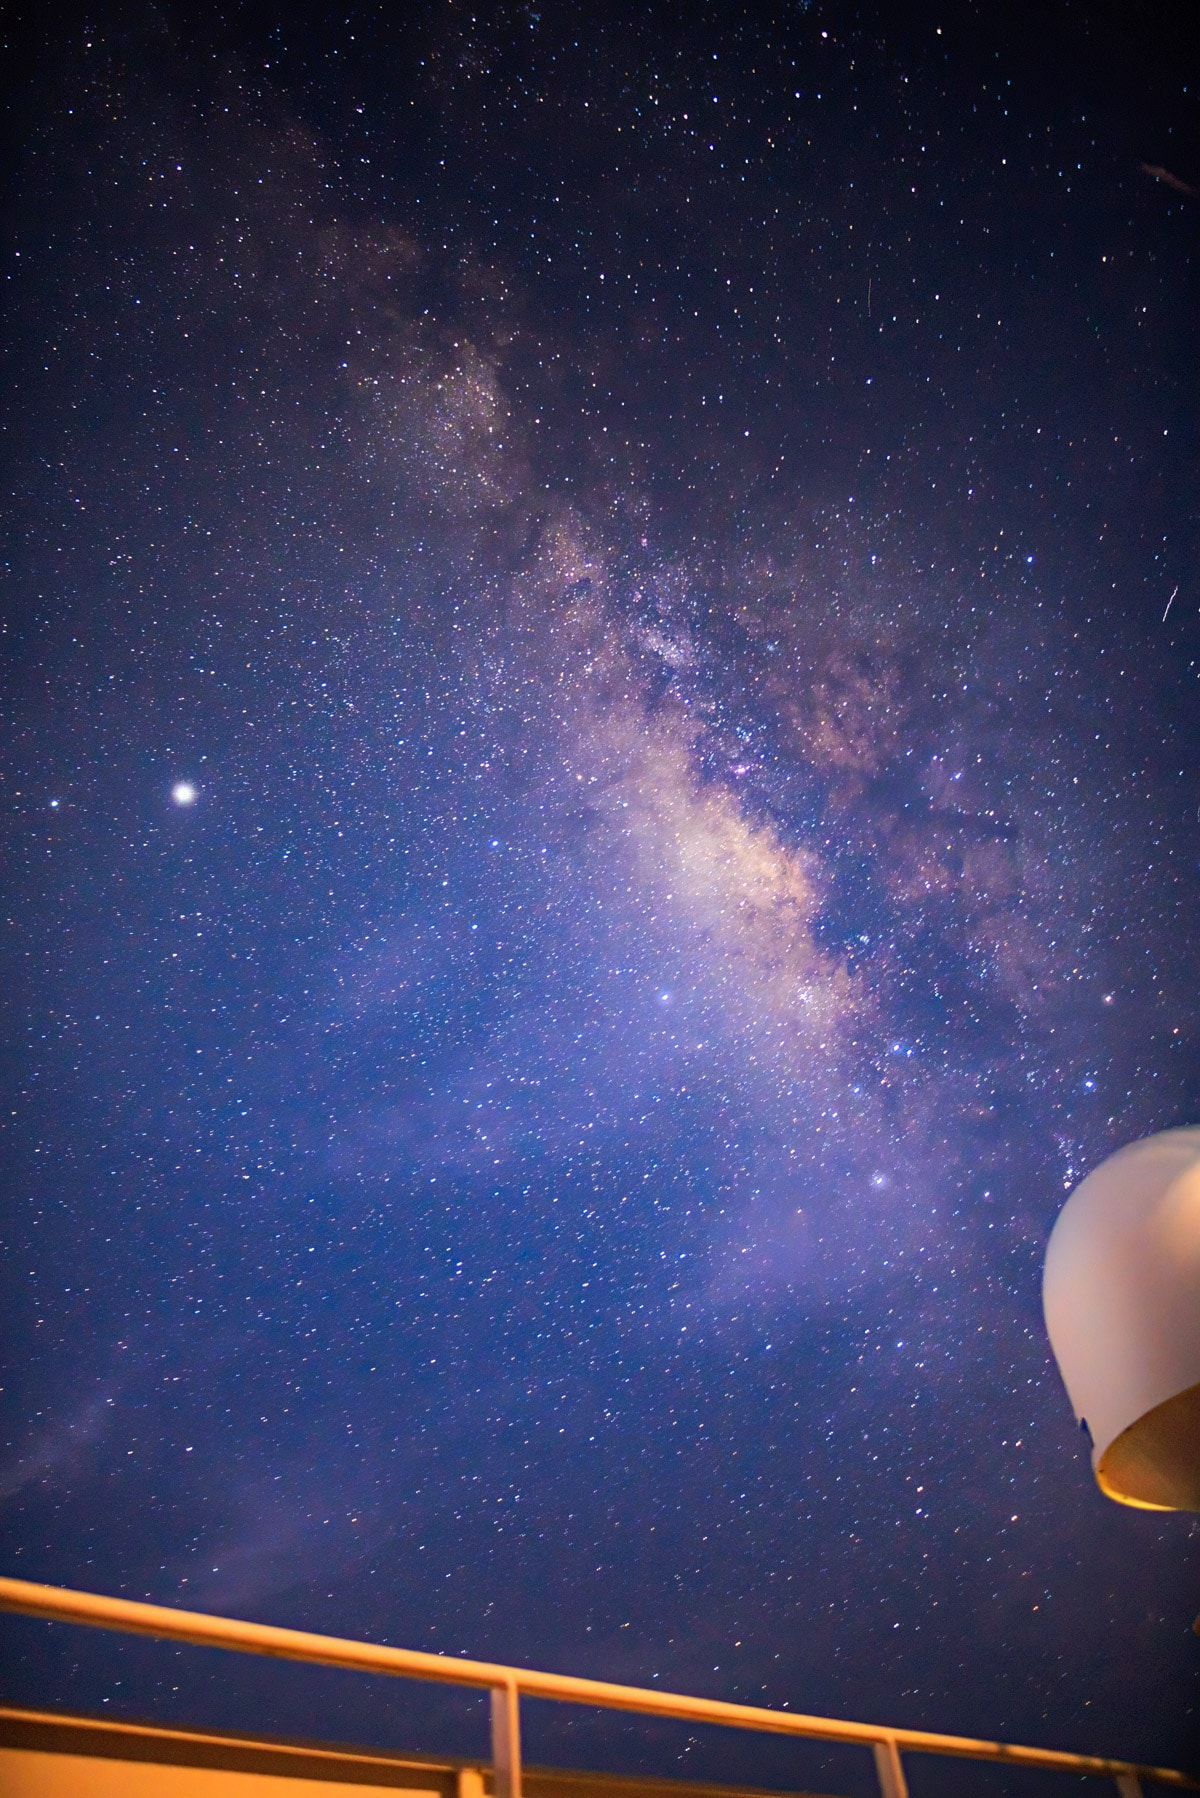 Milky Way from a Cargo Ship by Santiago Olay